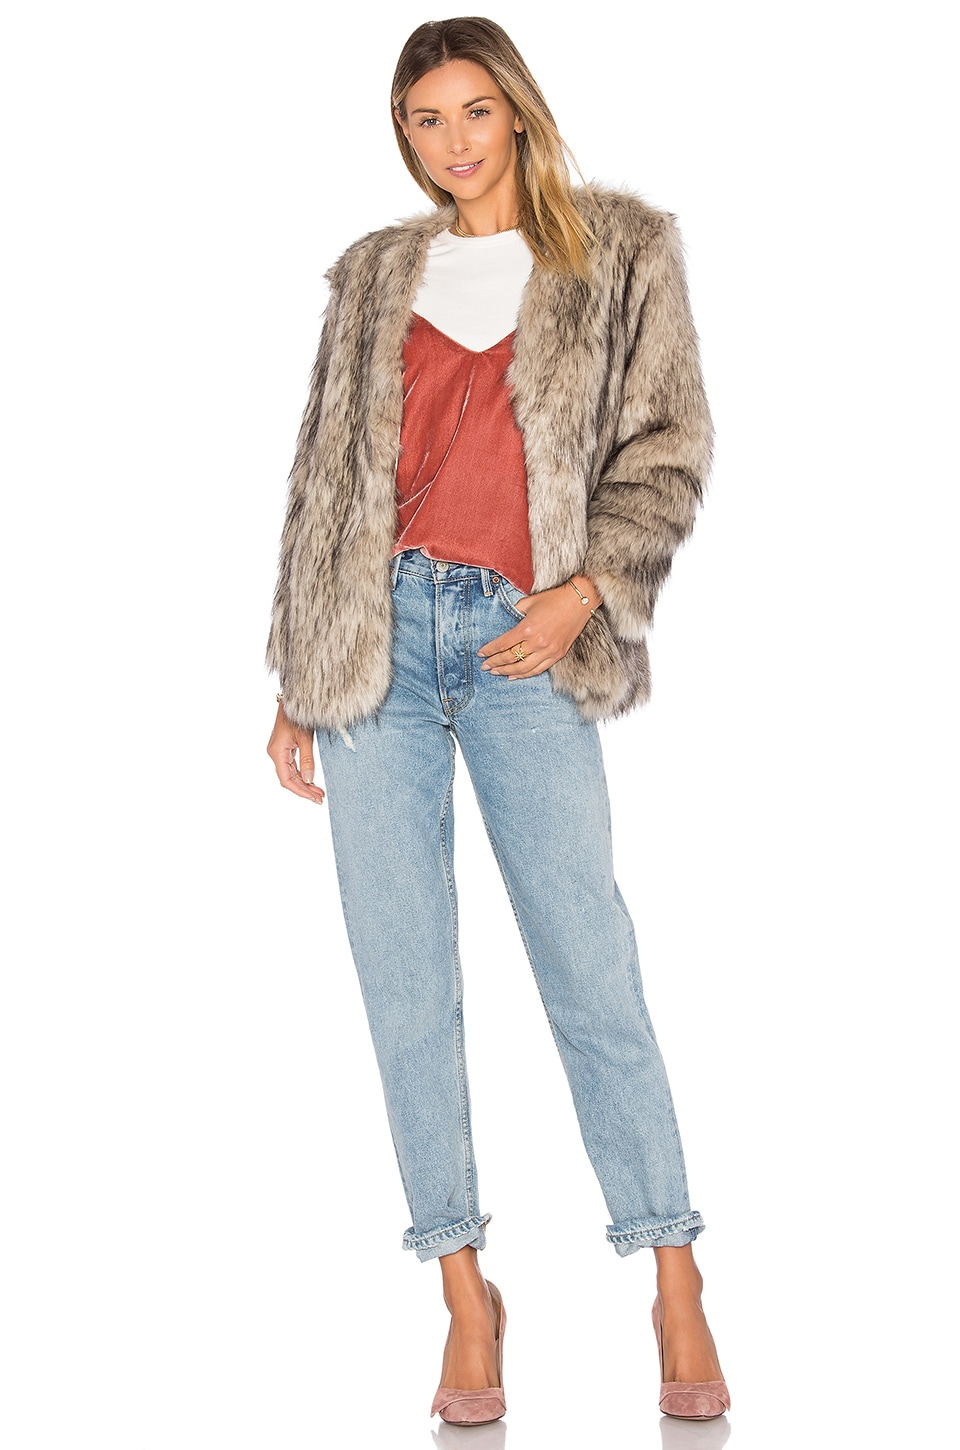 Lovers + Friends Adora Faux Fur Jacket in Tan